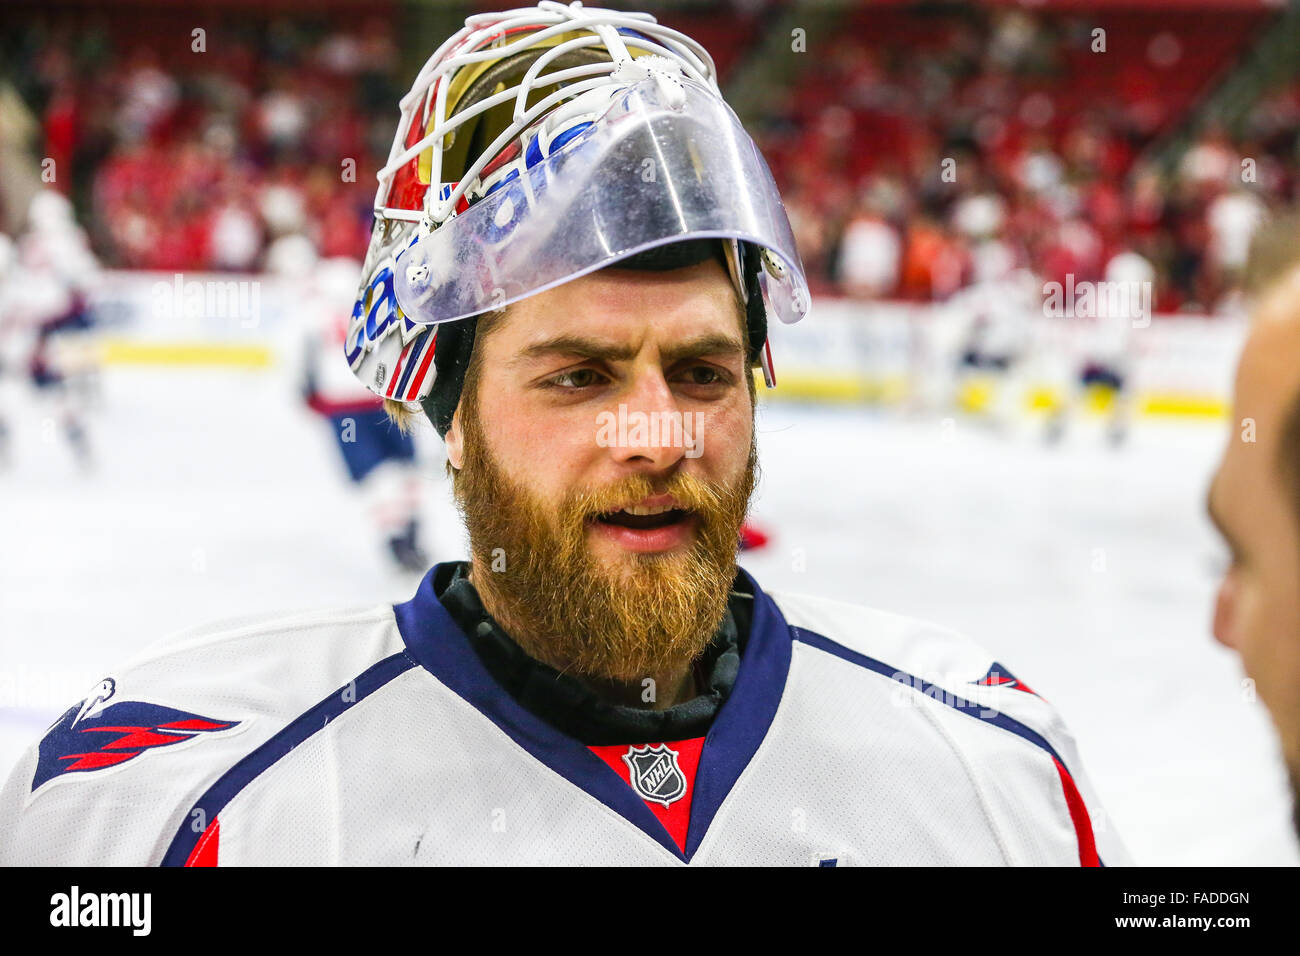 Washington Capitals Goalie Braden Holtby 70 During The Nhl Game Stock Photo Alamy